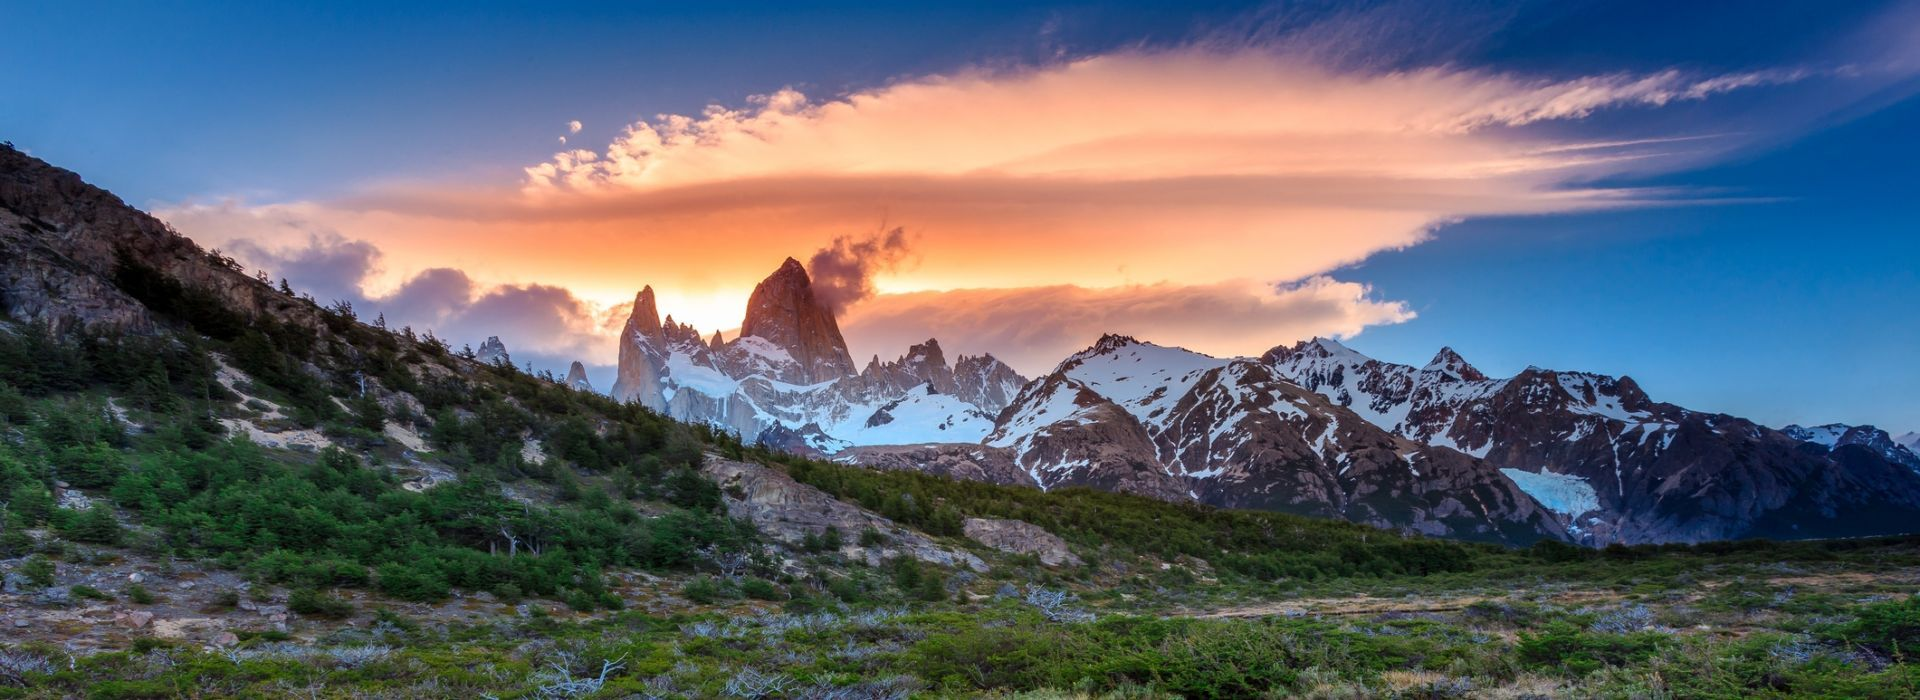 Sightseeing Tours in Argentina